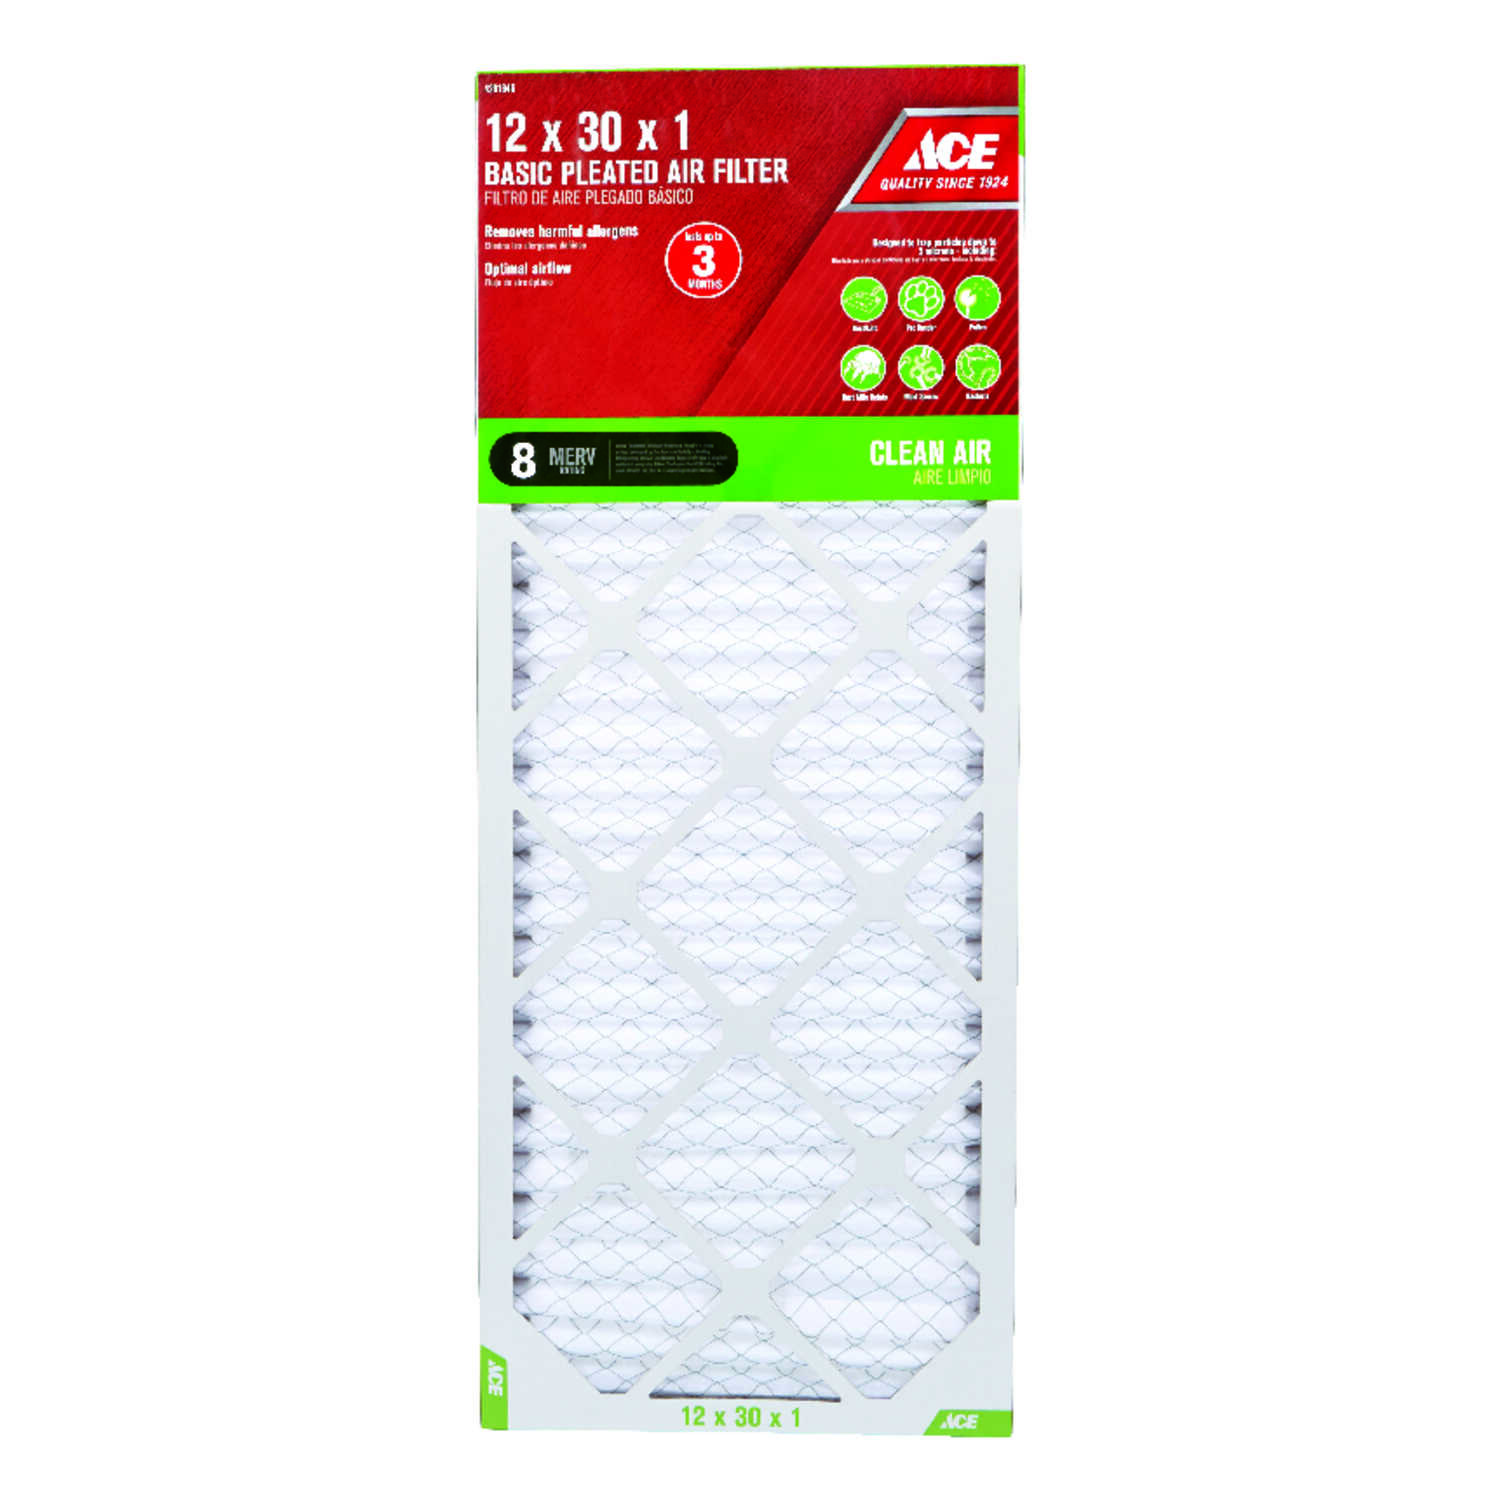 Ace  12 in. W x 30 in. H x 1 in. D 8 MERV Pleated Air Filter